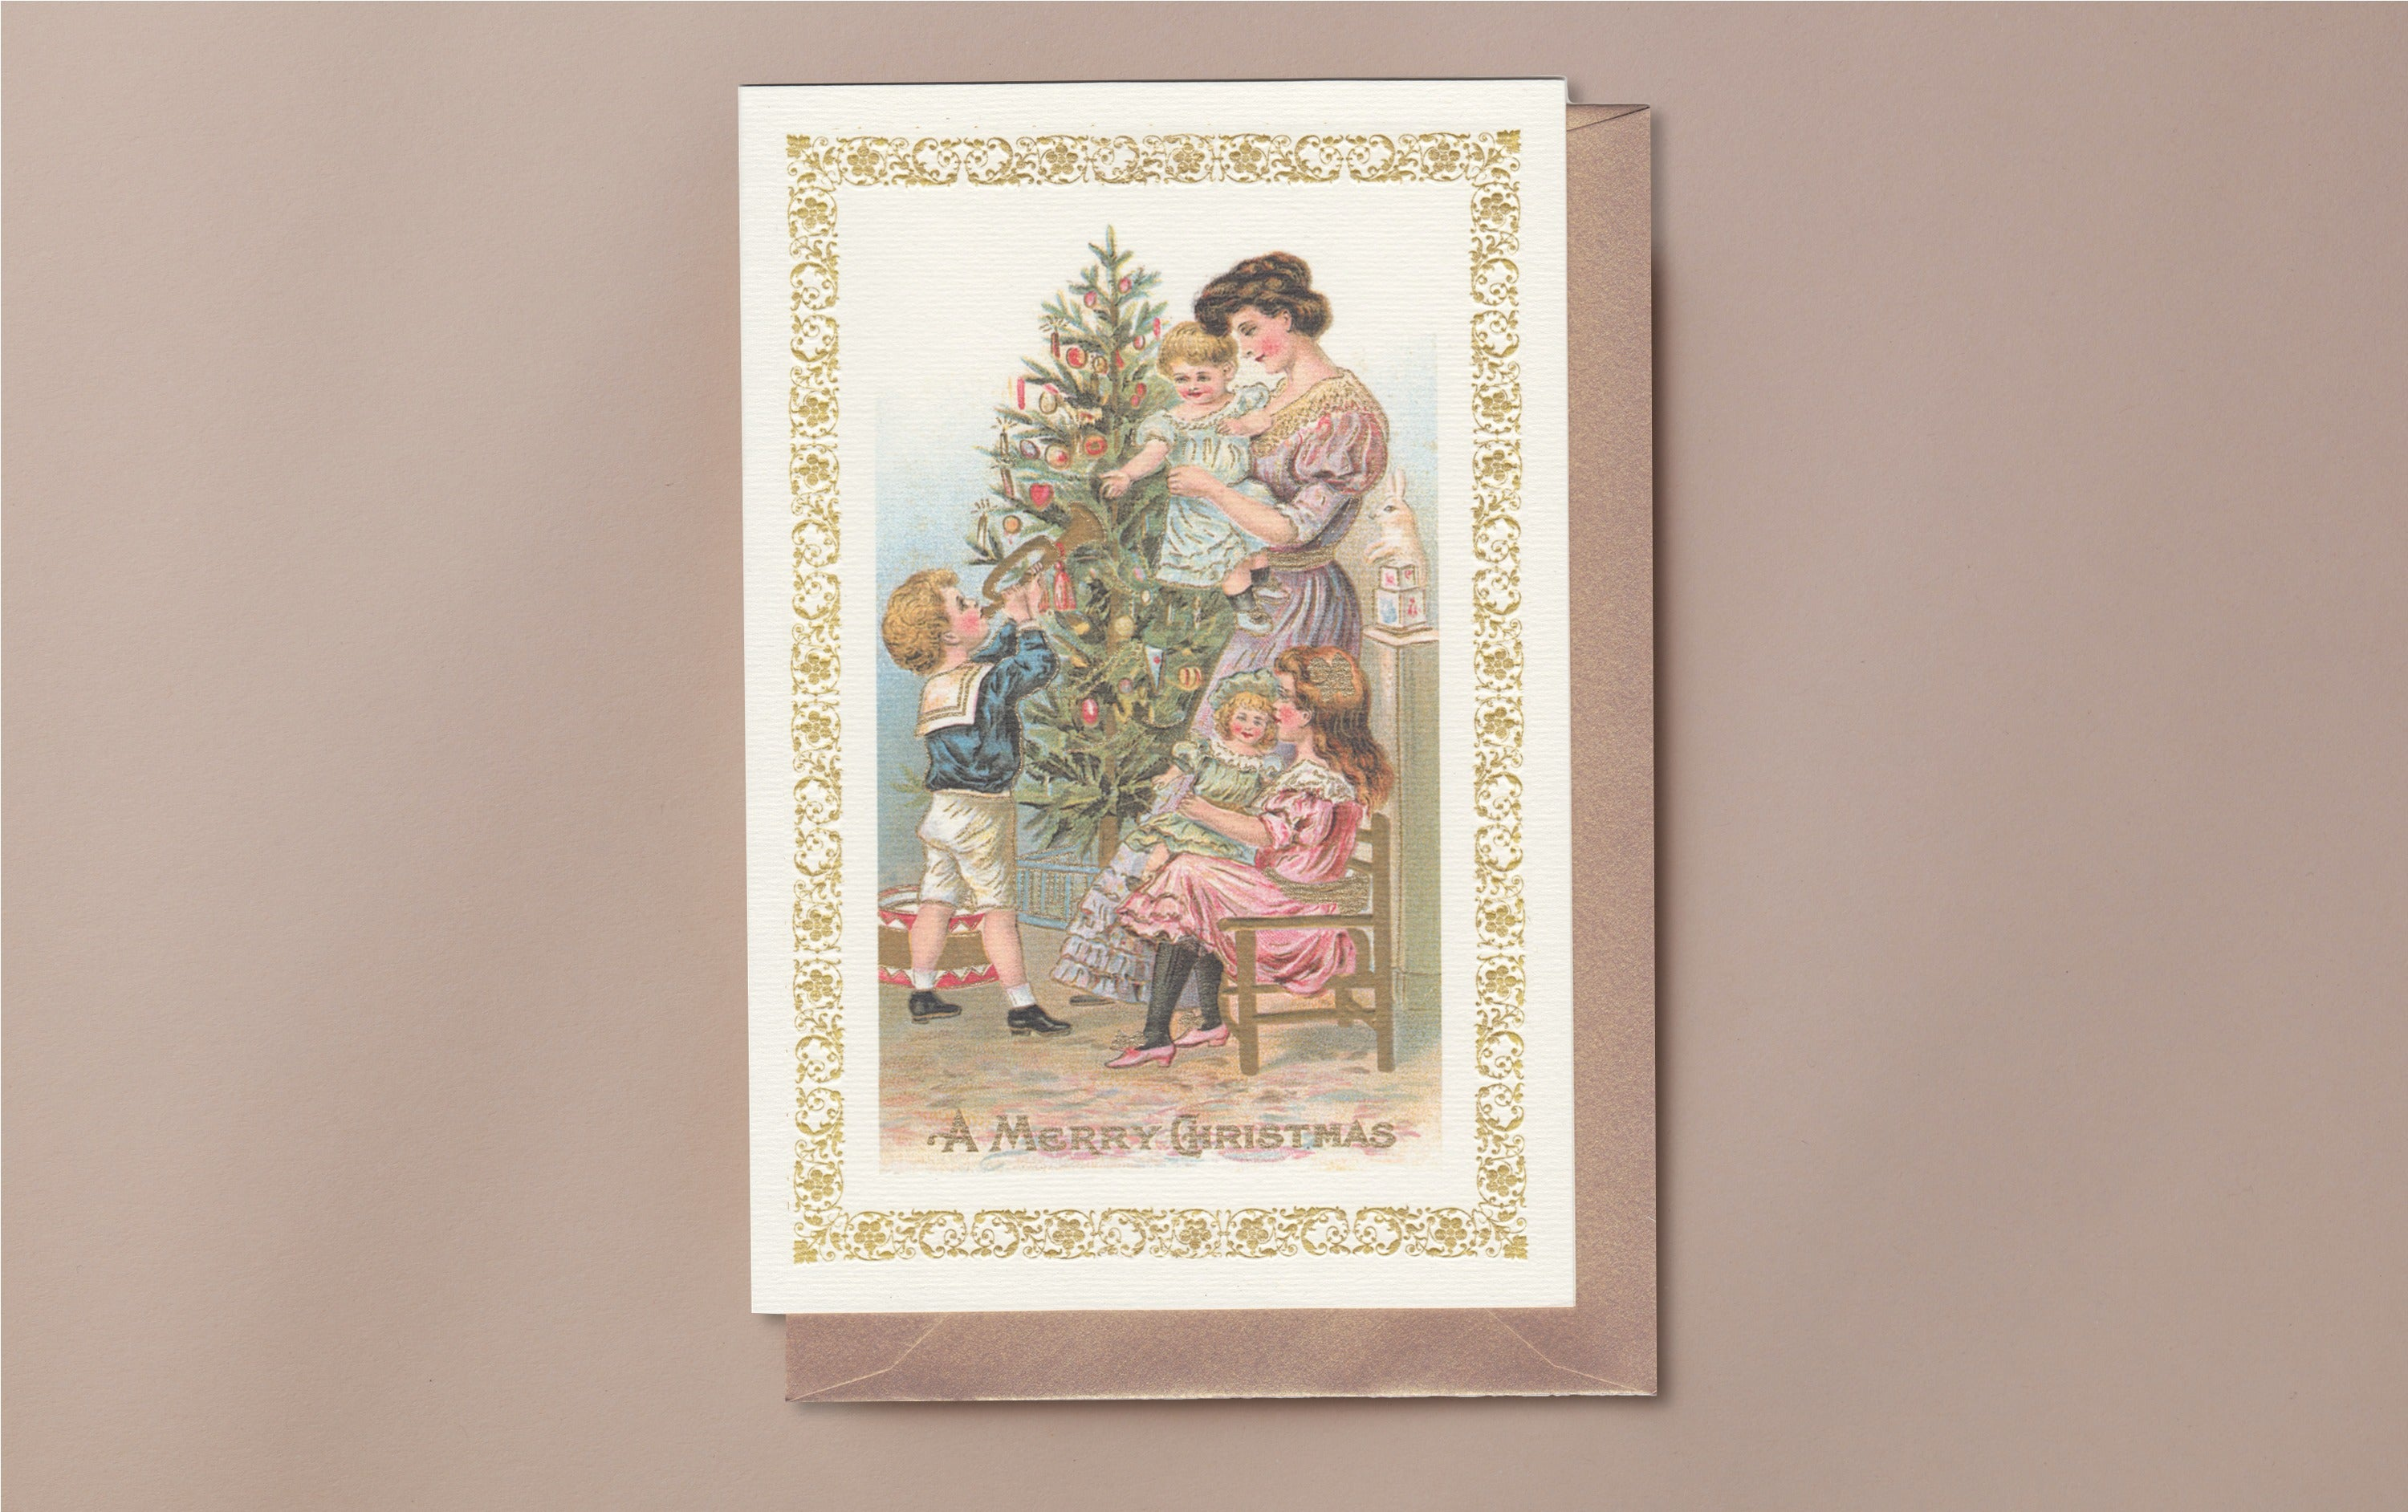 10 Christmas Cards and Envelopes, Christmas Tree